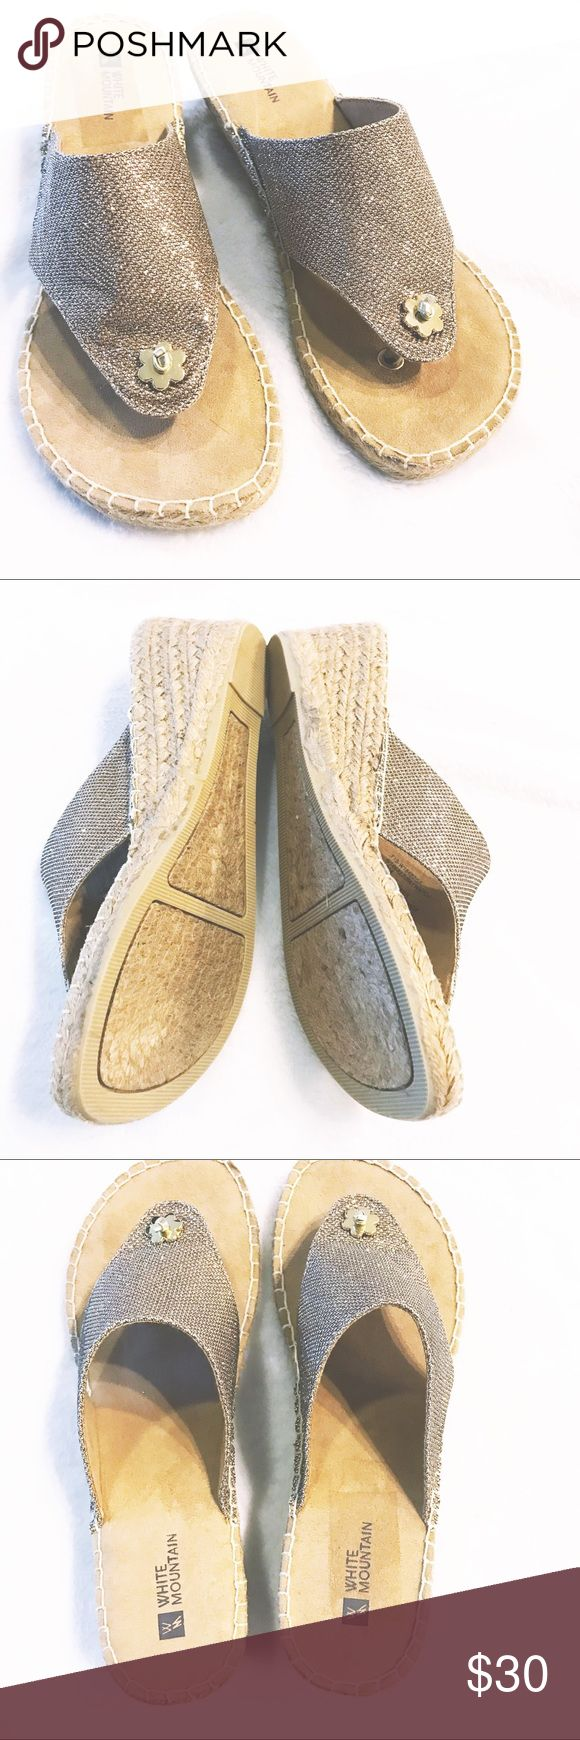 Tan/gold sandals great for summer with cute dress Wear the beach ball espadrille thong with all your summer attire. The rope wrapped wedge is 2 1/2 inches high and has lots of padding to keep you comfy. Choose denim or sparkle fabrics.  🌊 white mountain Shoes Sandals